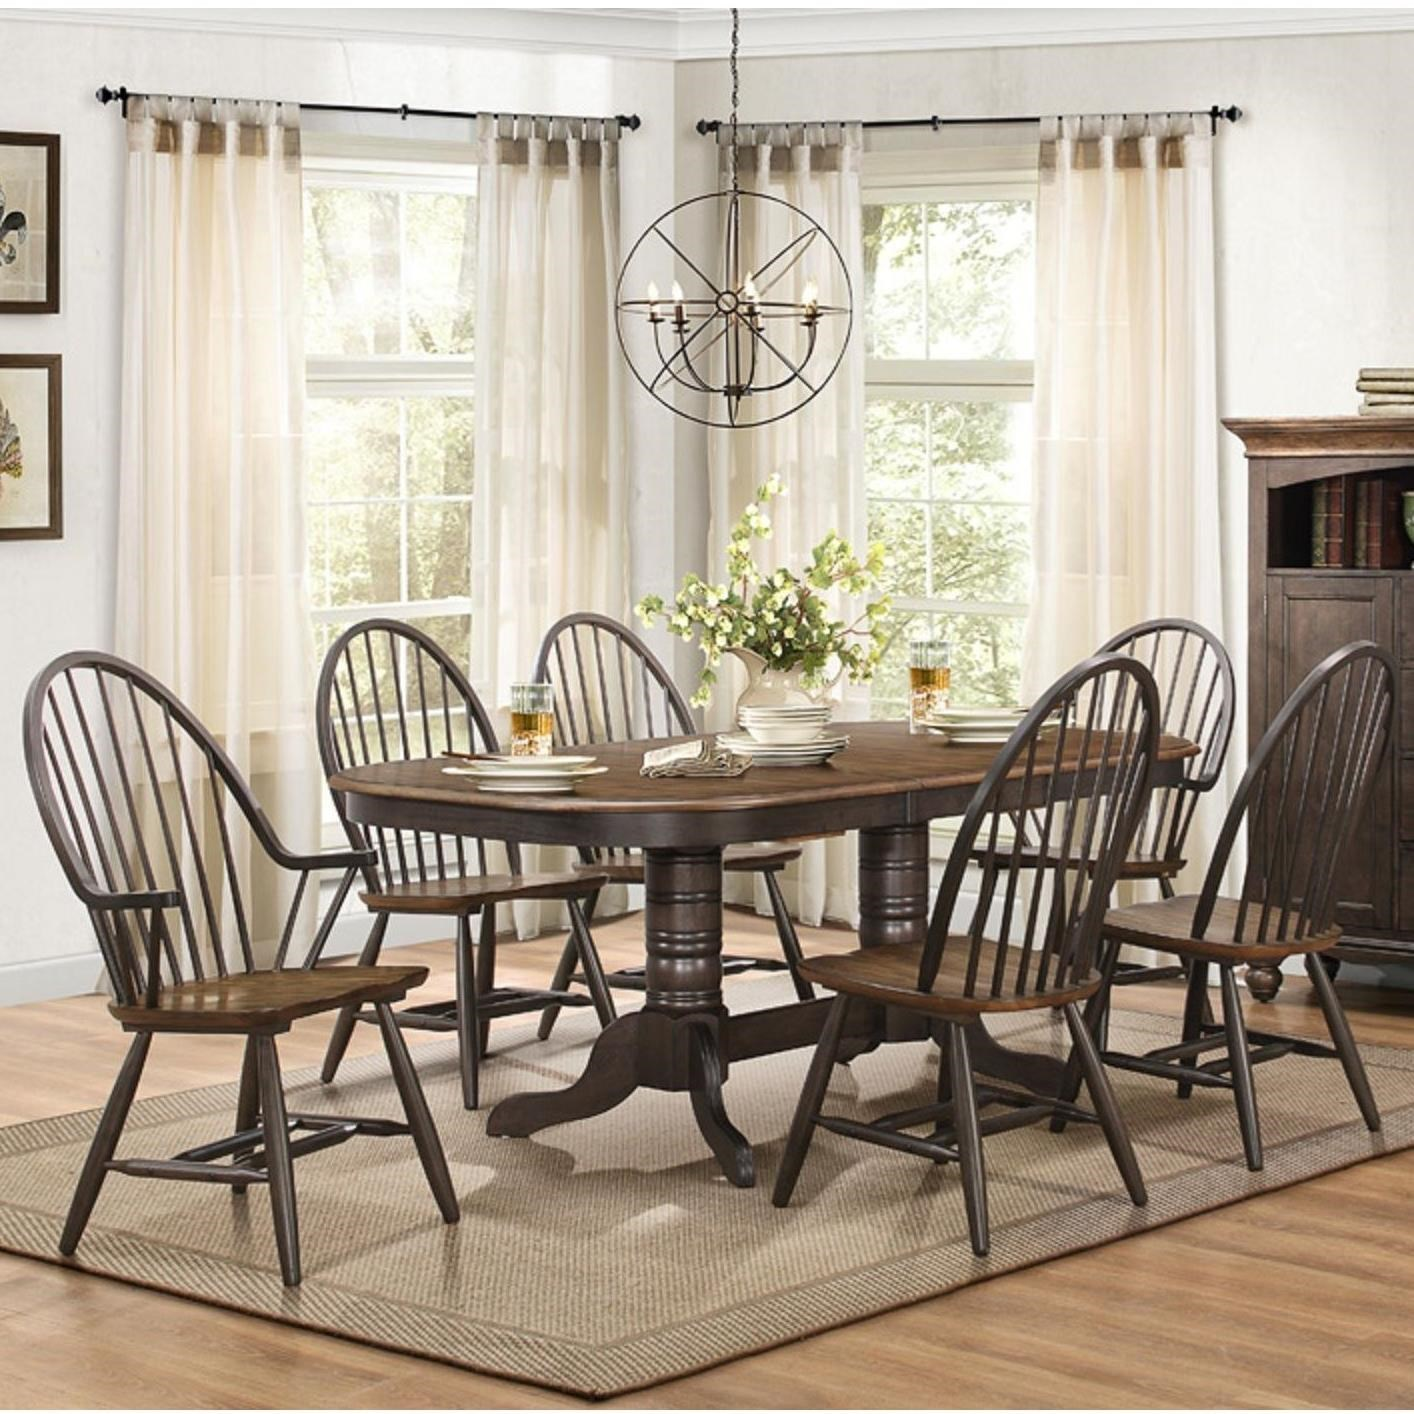 Cline Transitional Dining Table And Chair Set With Two Tone Finish By  Homelegance